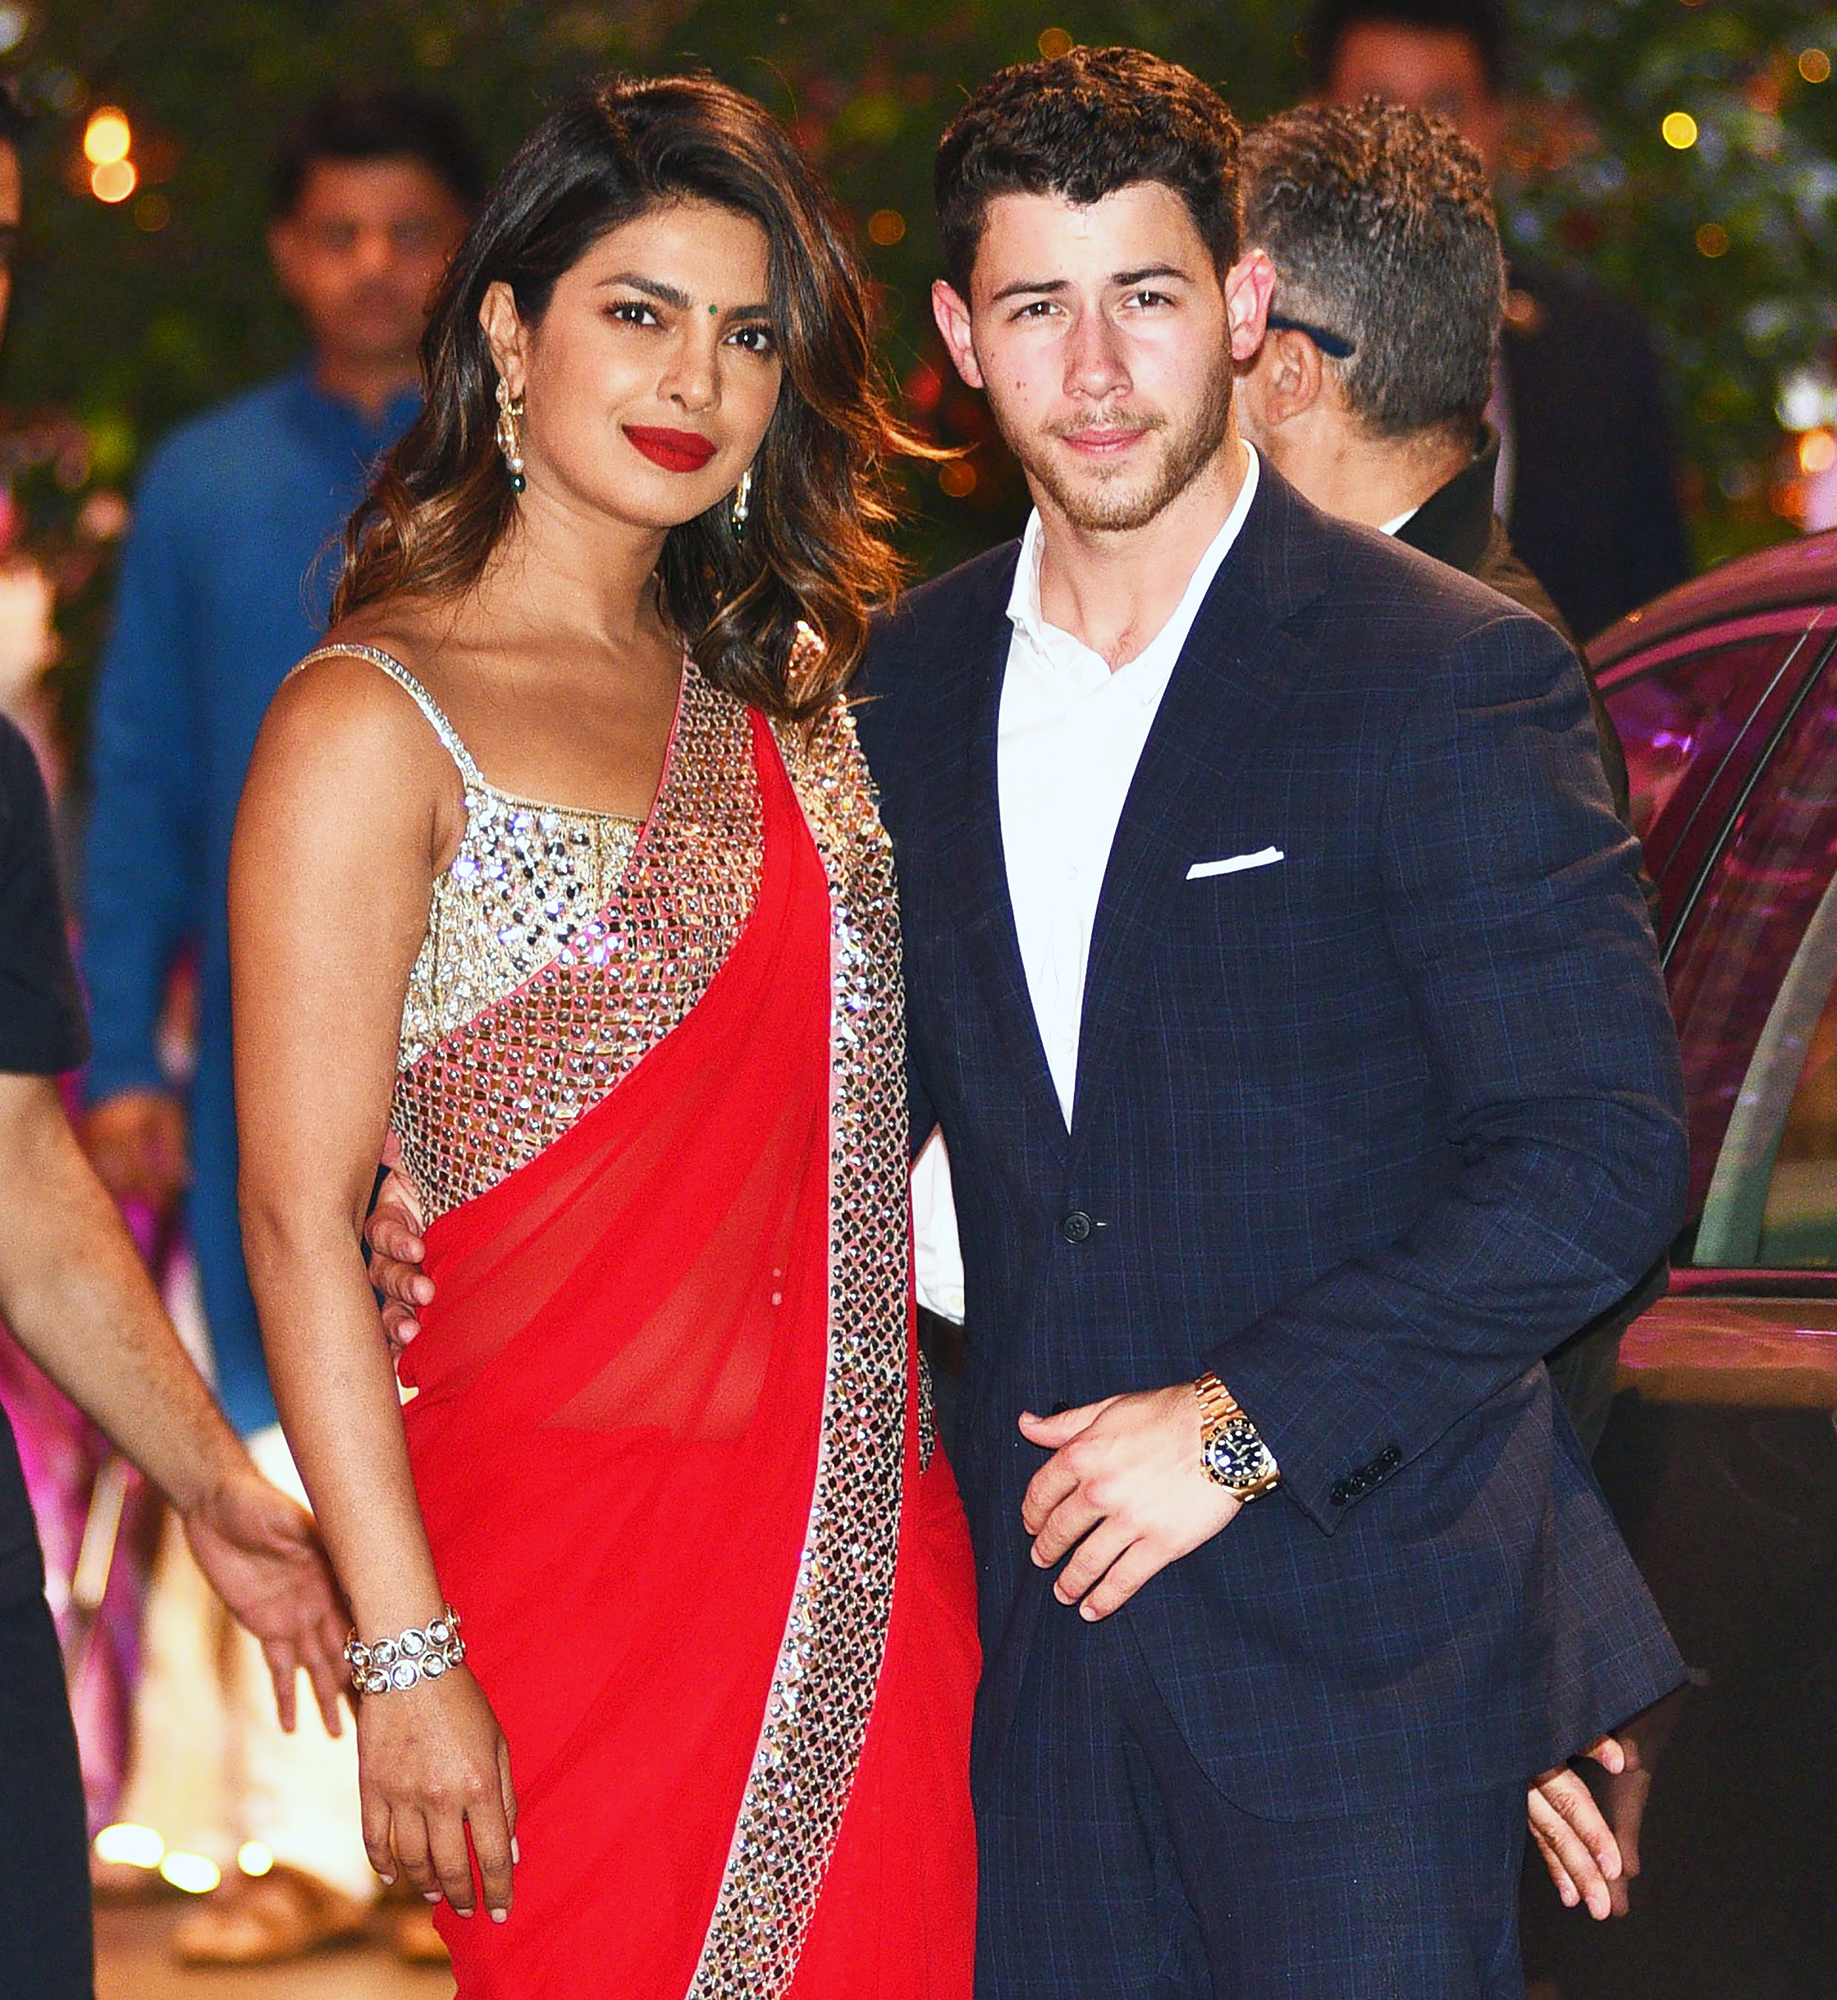 Nick Jonas Family To Meet Priyanka Chopra Family